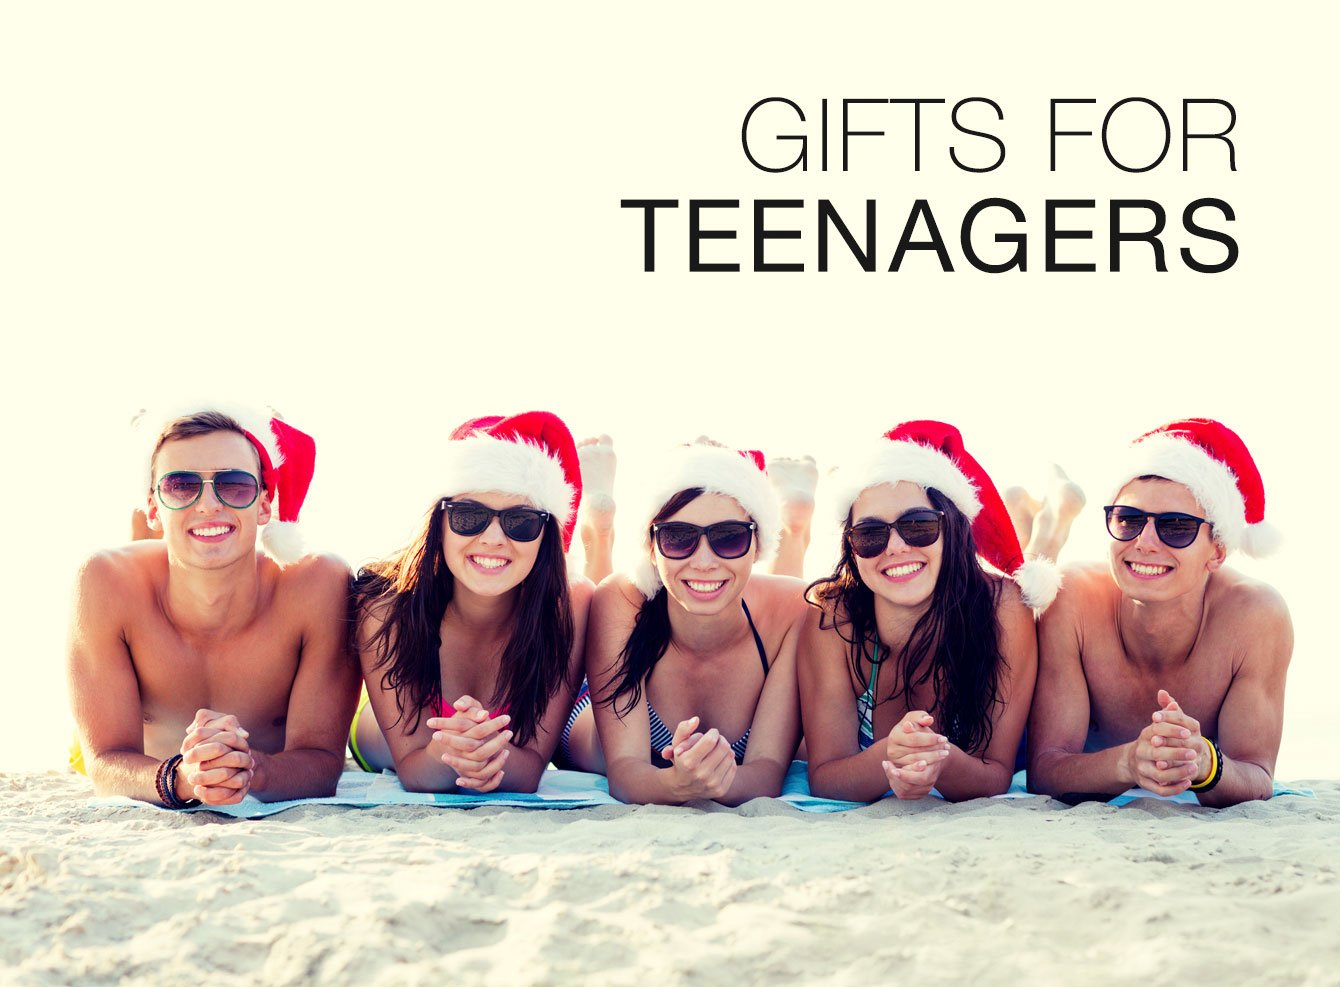 Gifts for Teenagers